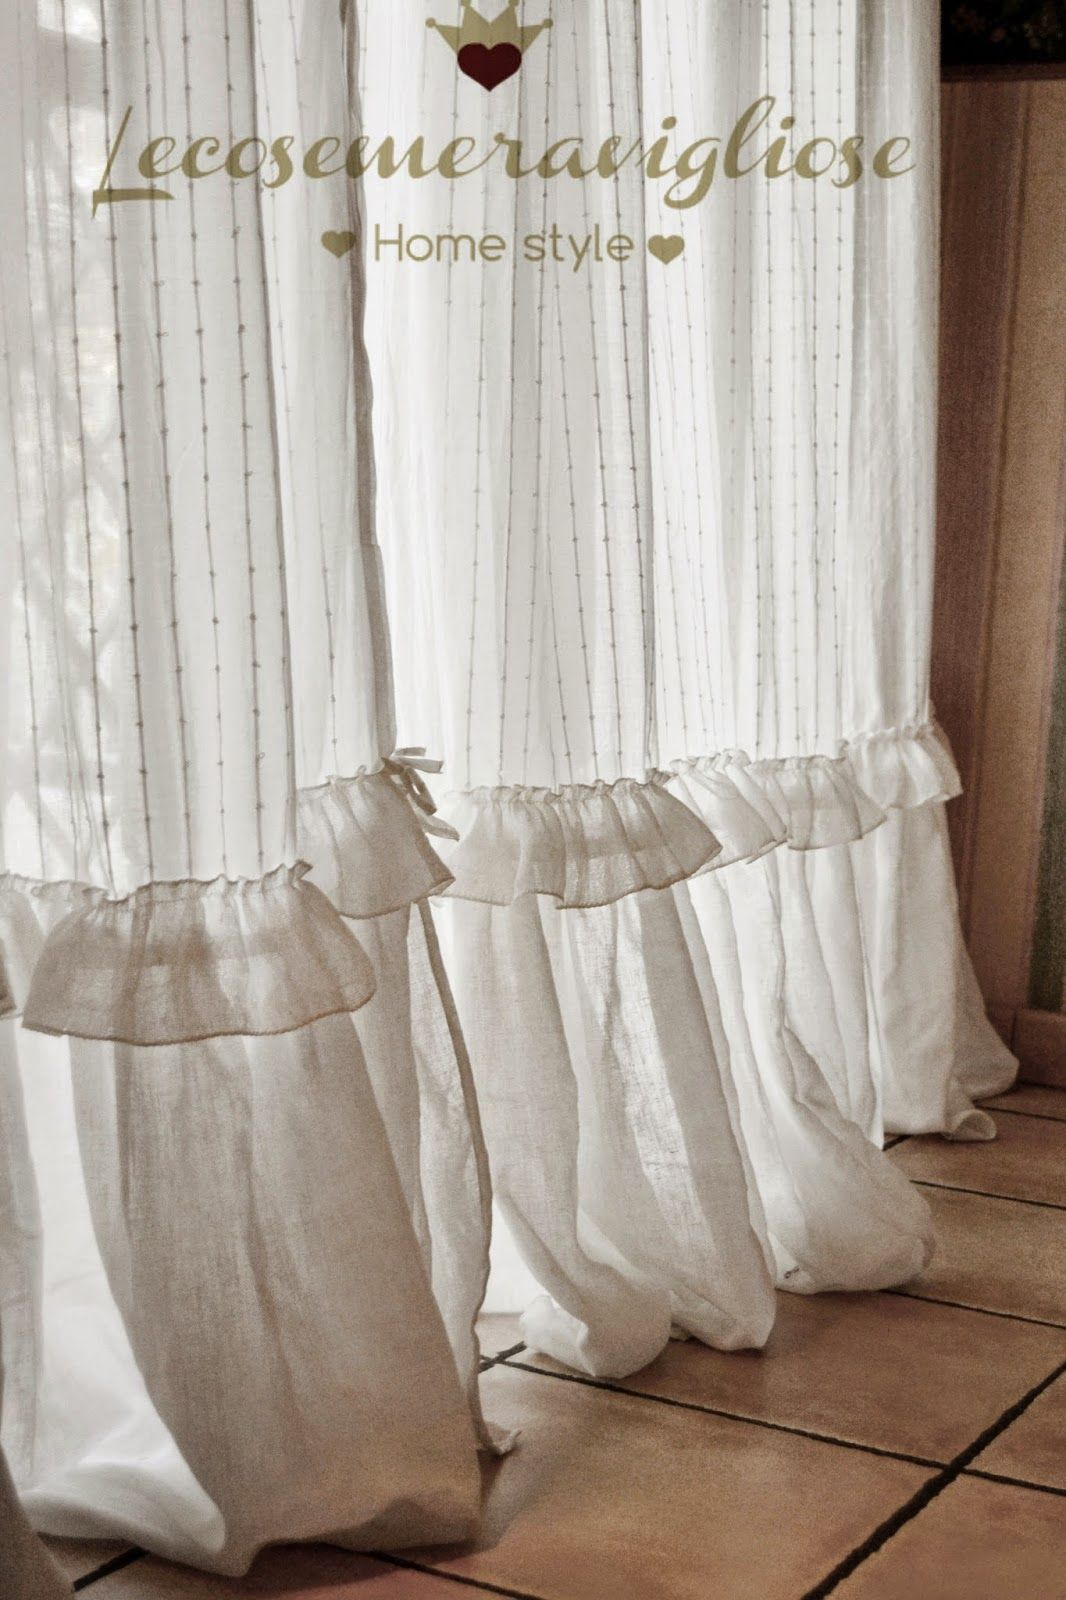 Arredamento Country Shabby Chic.Blog Su Arredamento Shabby E Country Chic Interiors Design